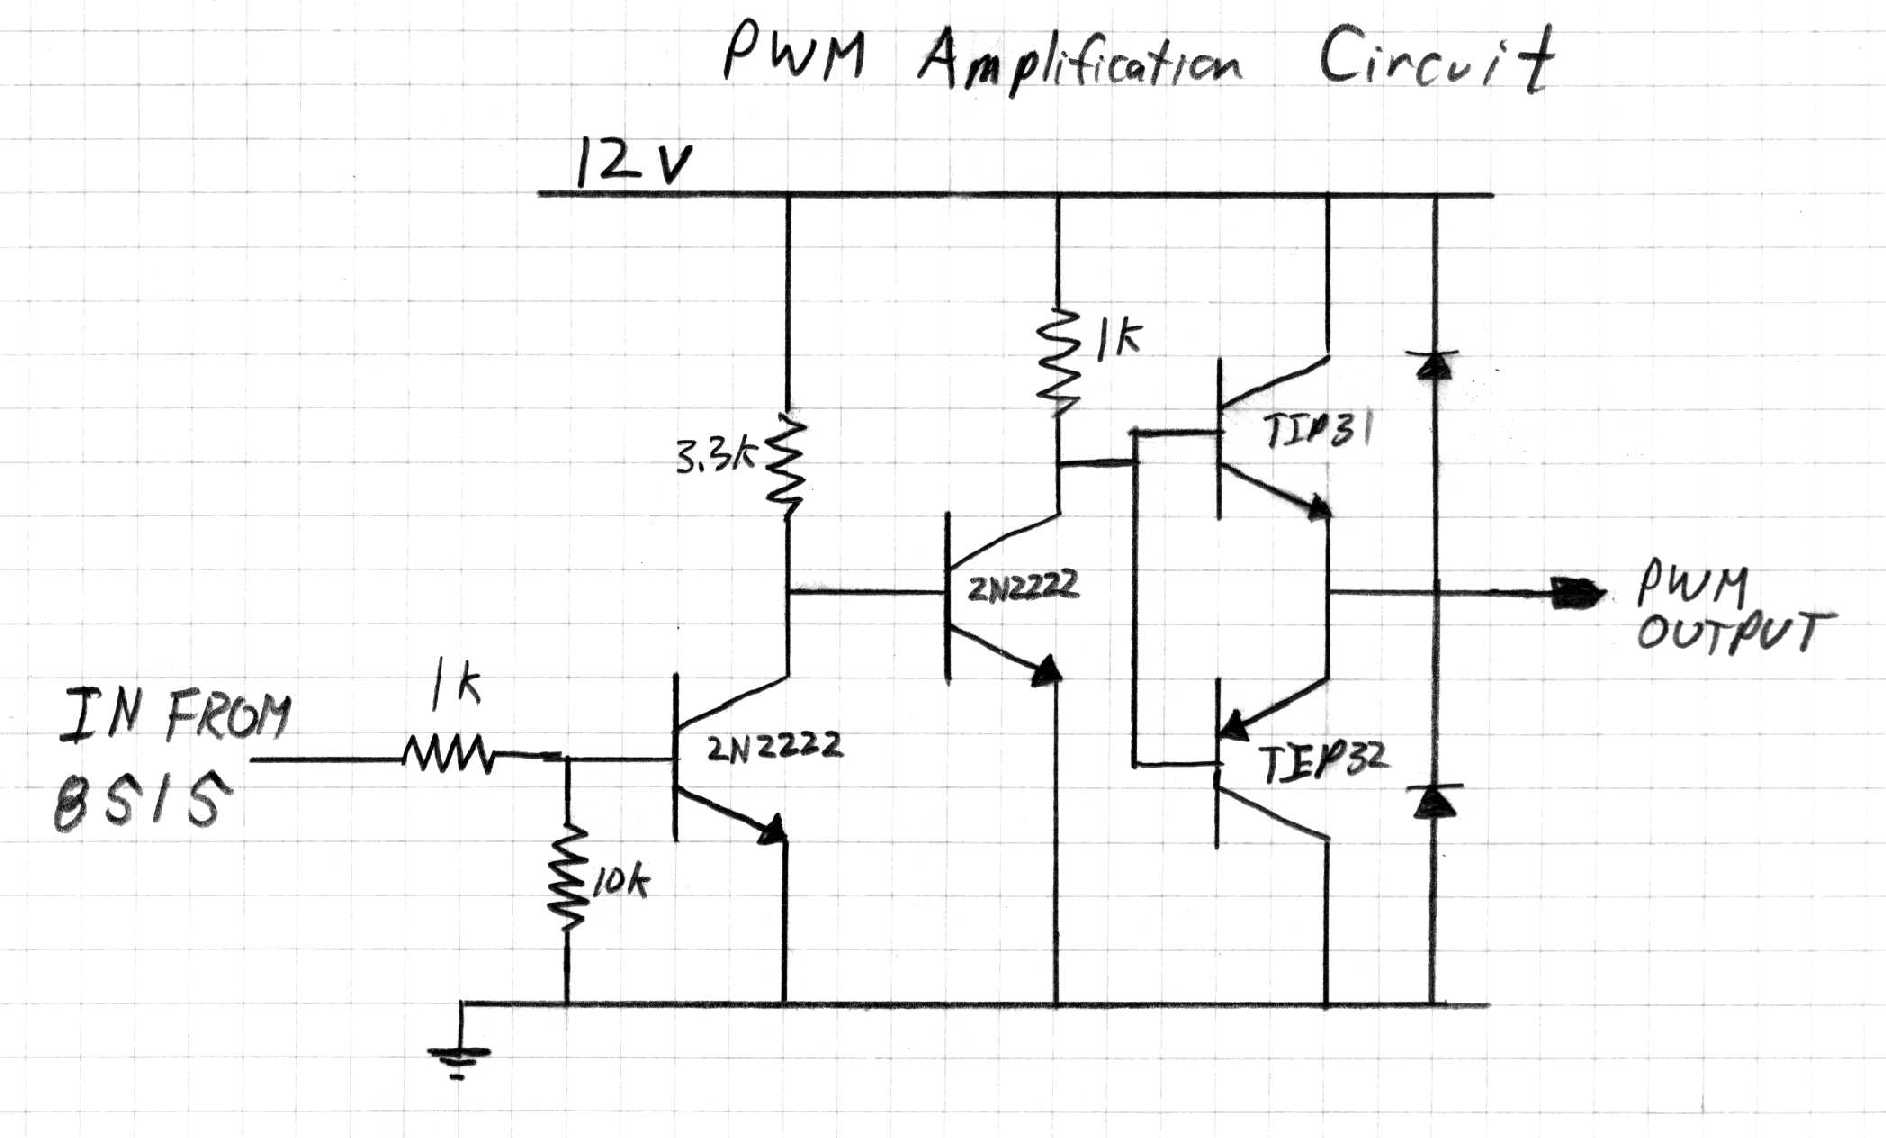 Circuit Schematics